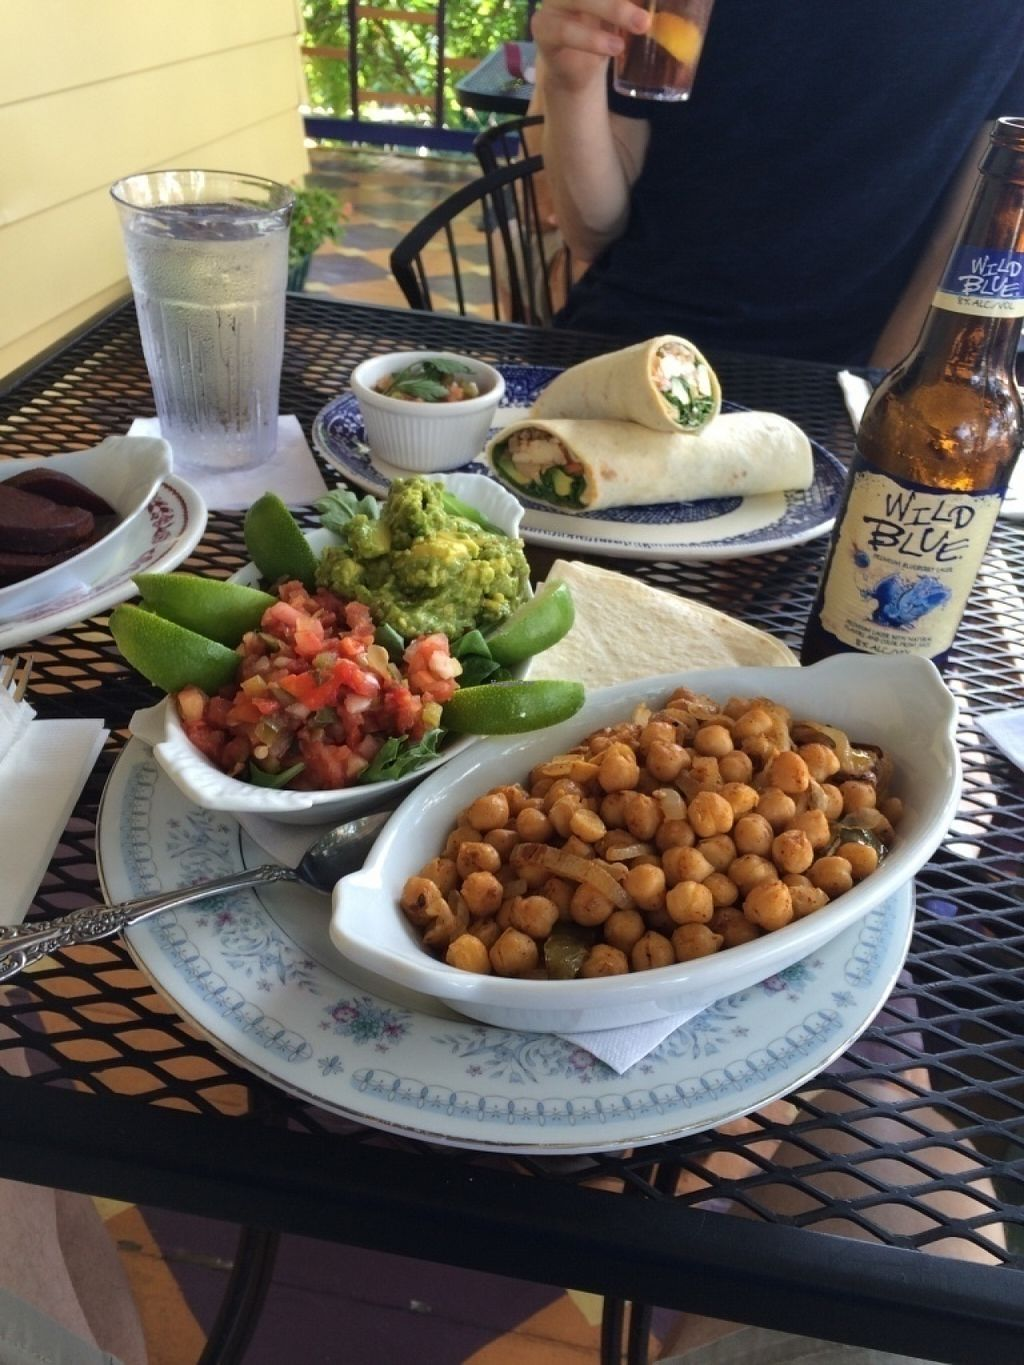 """Photo of Bellefonte Cafe  by <a href=""""/members/profile/VeganVegabond"""">VeganVegabond</a> <br/>Chickpea Fajitas with fresh salsa, guacamole, limes, and flour tortilla...Banh mì (with spicy tofu) wrap with pickled veggies (included) <br/> July 21, 2016  - <a href='/contact/abuse/image/47895/161470'>Report</a>"""